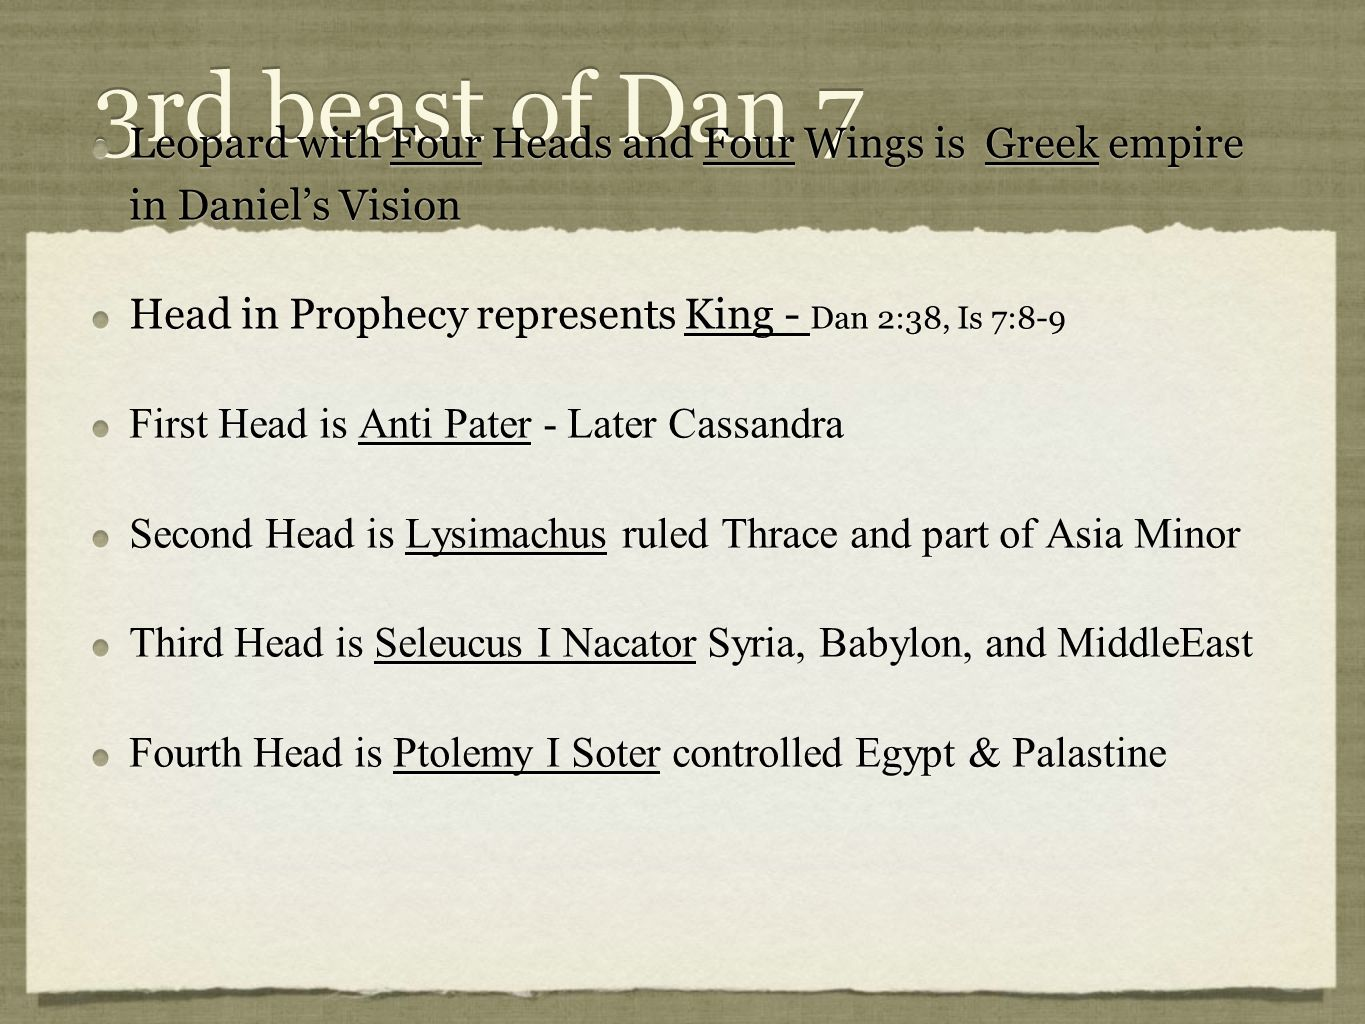 3rd beast of Dan 7 Leopard with Four Heads and Four Wings is Greek empire in Daniel's Vision Head in Prophecy represents King - Dan 2:38, Is 7:8-9 First Head is Anti Pater - Later Cassandra Second Head is Lysimachus ruled Thrace and part of Asia Minor Third Head is Seleucus I Nacator Syria, Babylon, and MiddleEast Fourth Head is Ptolemy I Soter controlled Egypt & Palastine Leopard with Four Heads and Four Wings is Greek empire in Daniel's Vision Head in Prophecy represents King - Dan 2:38, Is 7:8-9 First Head is Anti Pater - Later Cassandra Second Head is Lysimachus ruled Thrace and part of Asia Minor Third Head is Seleucus I Nacator Syria, Babylon, and MiddleEast Fourth Head is Ptolemy I Soter controlled Egypt & Palastine